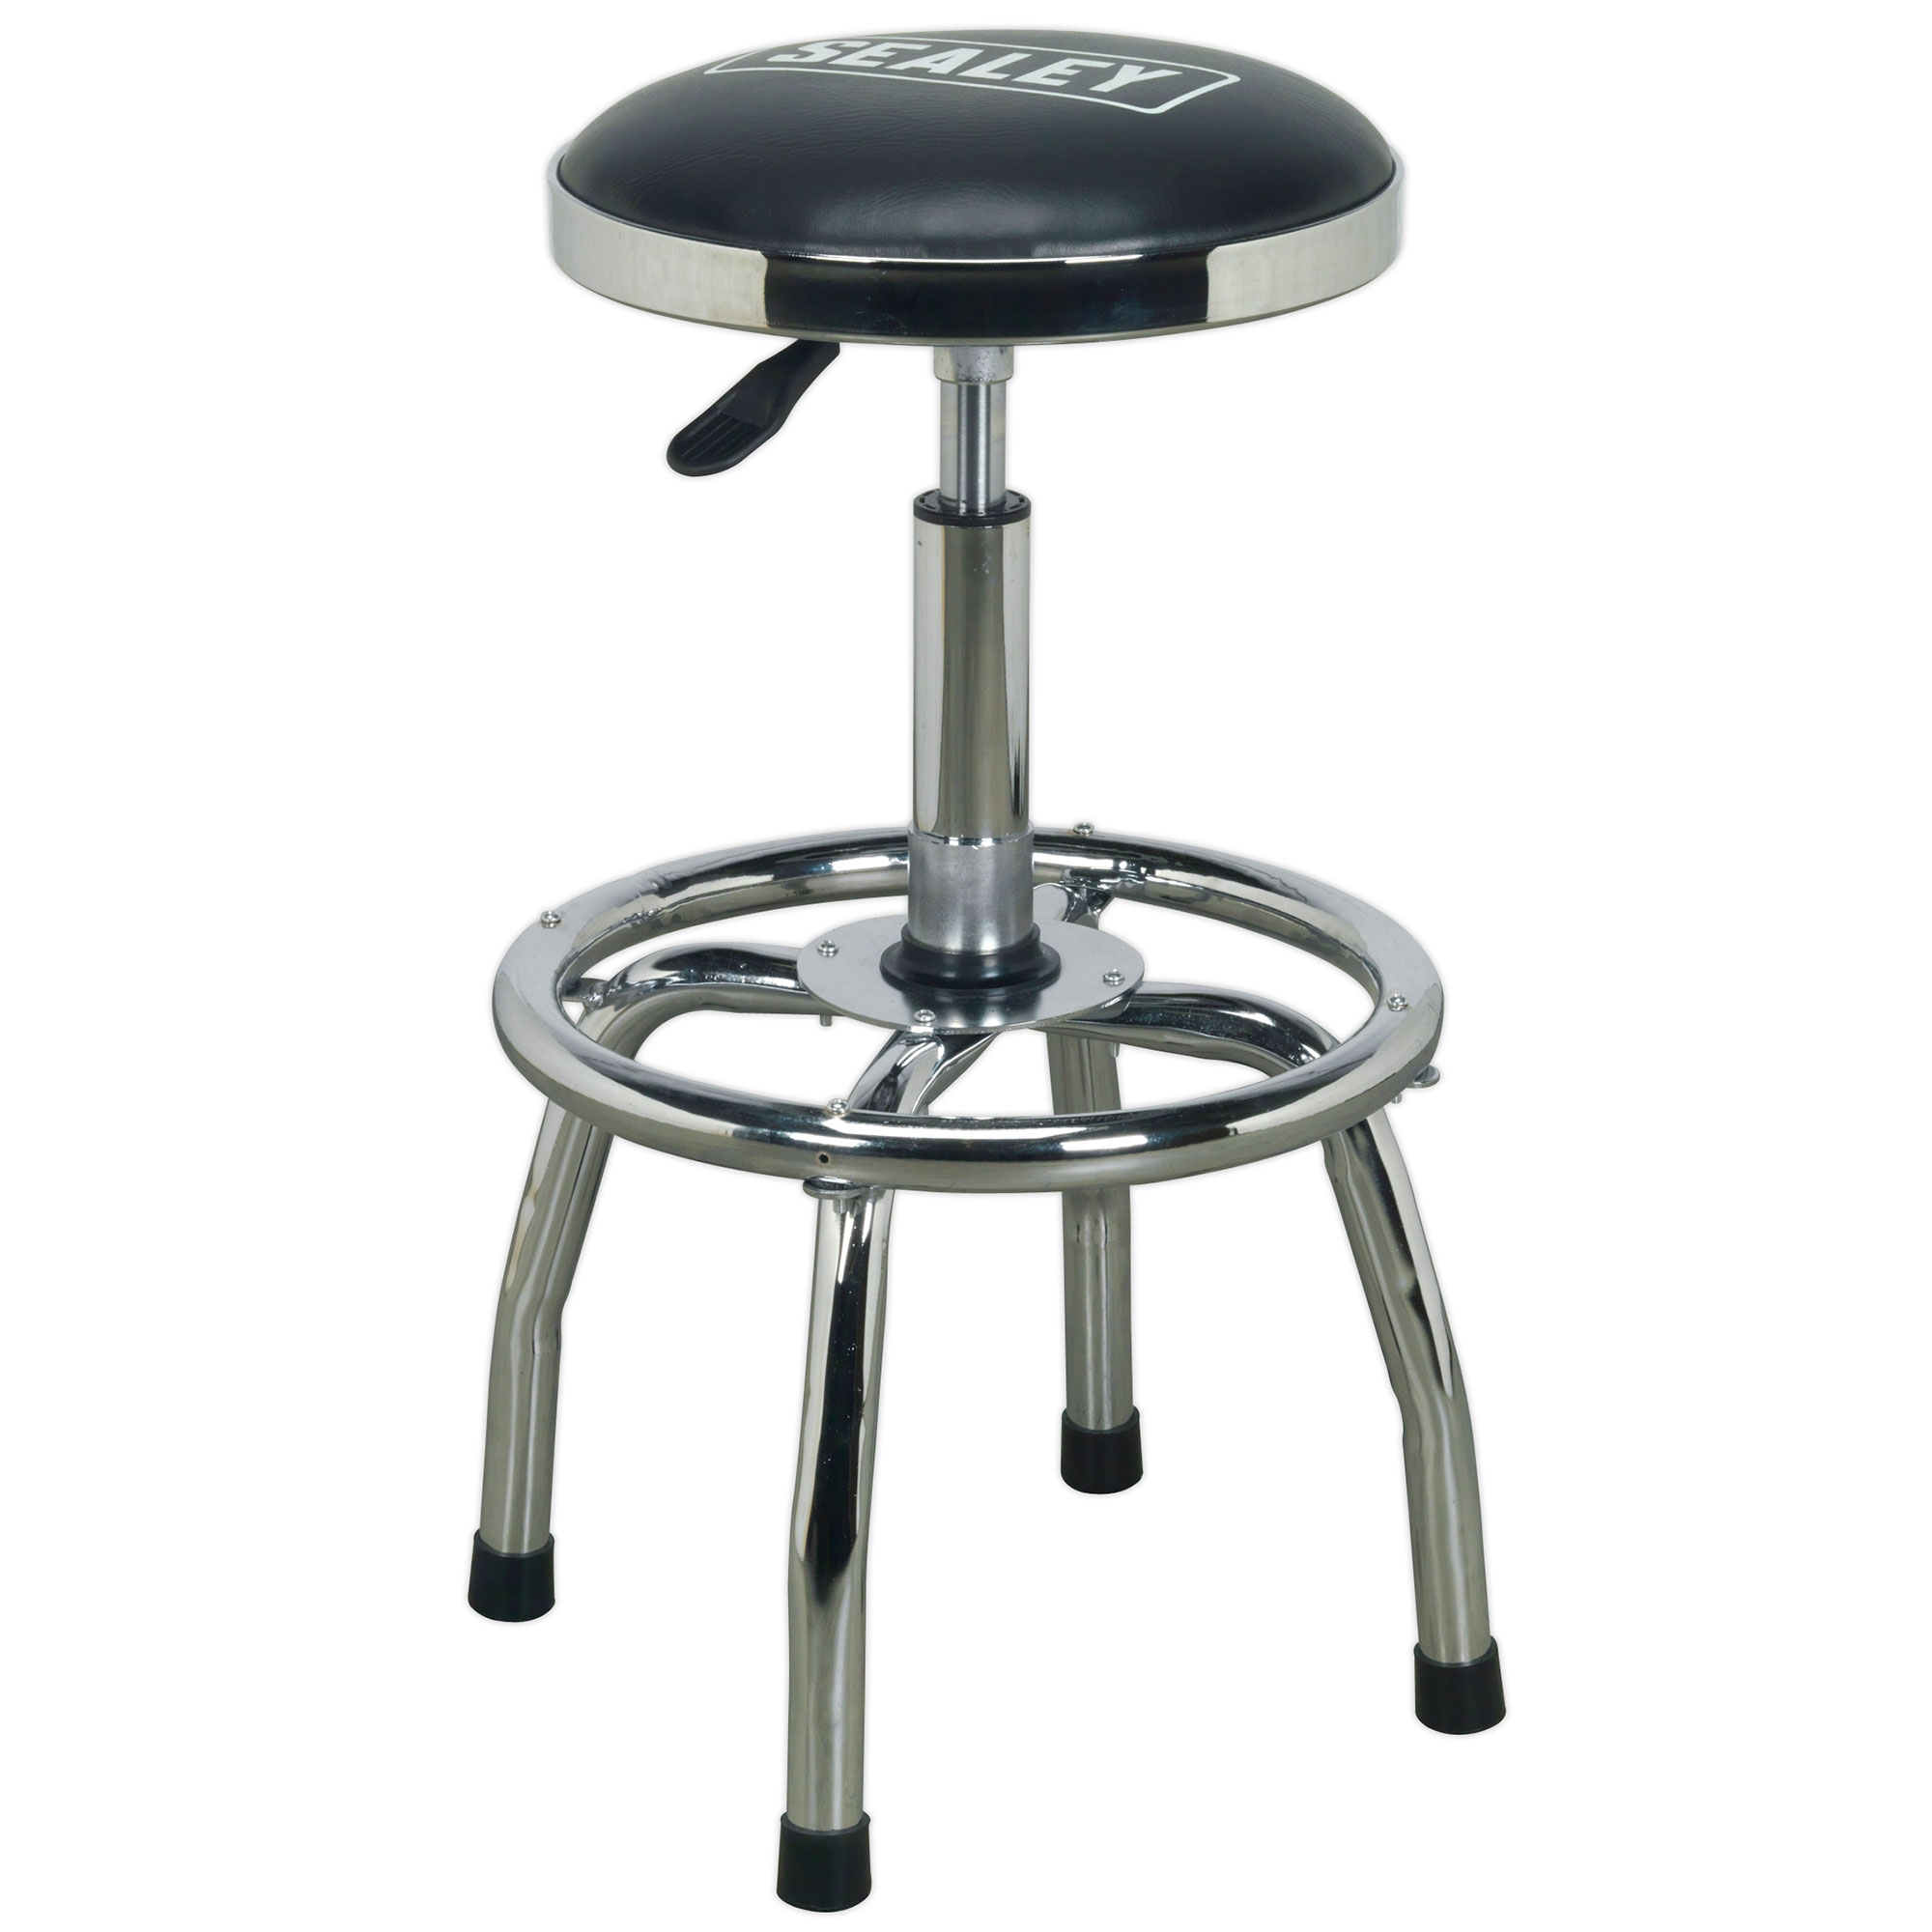 Sealey Workshop Stool Heavy Duty Pneumatic With Adjustable